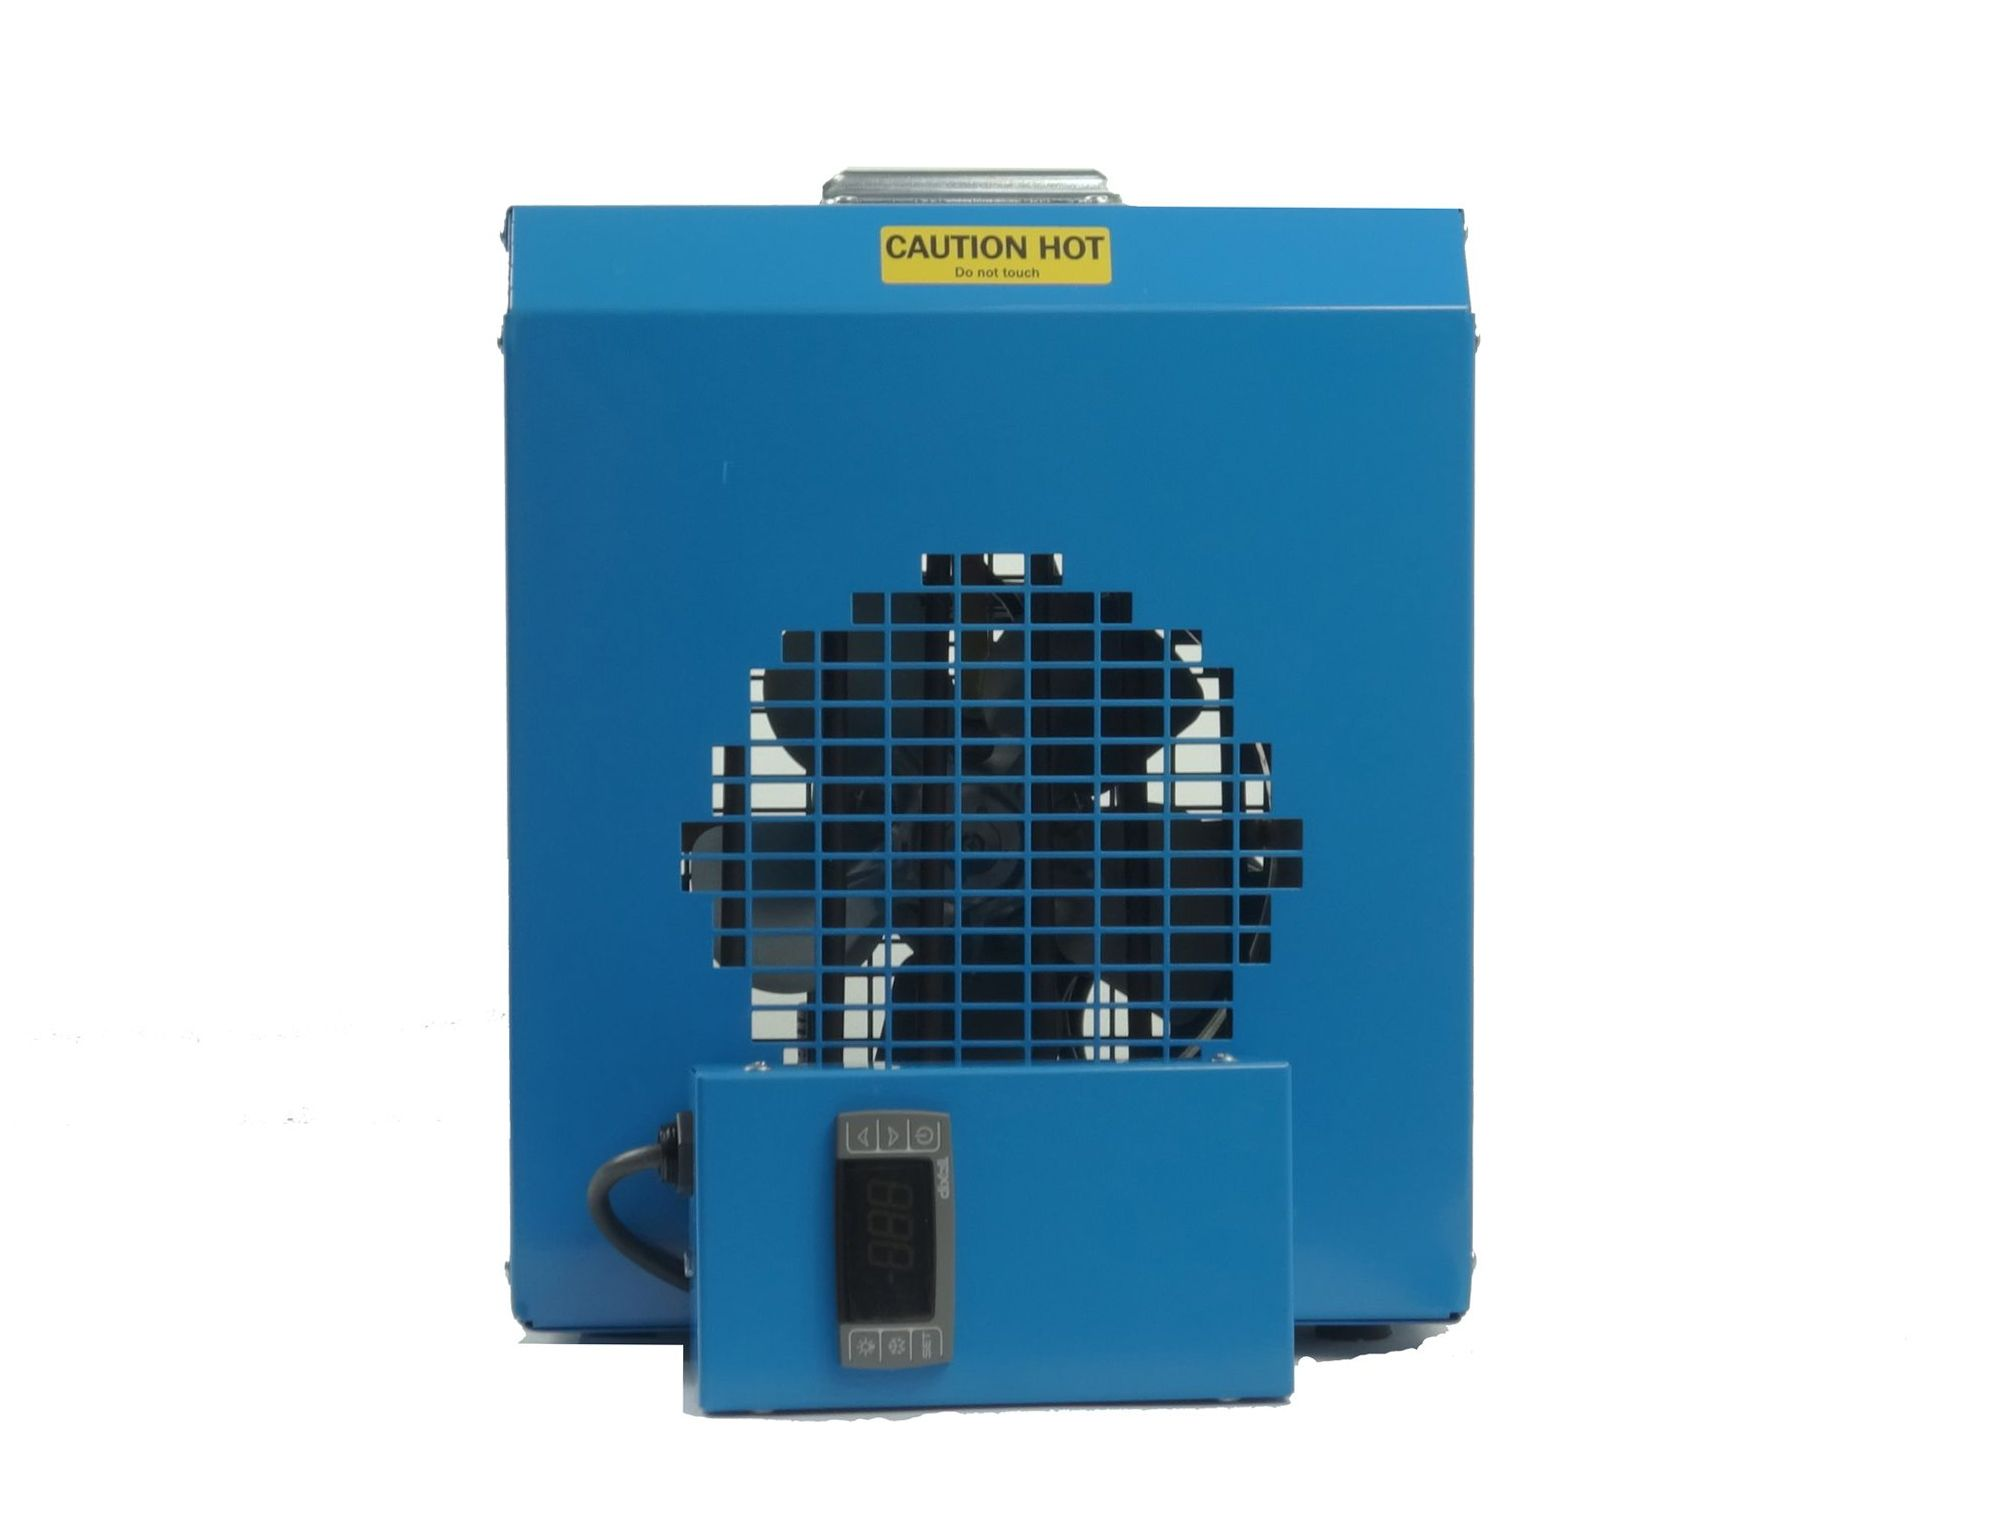 Bed Bug Killing Electric Heater FF3T-13 3Kw 12000Btu With Controller ...